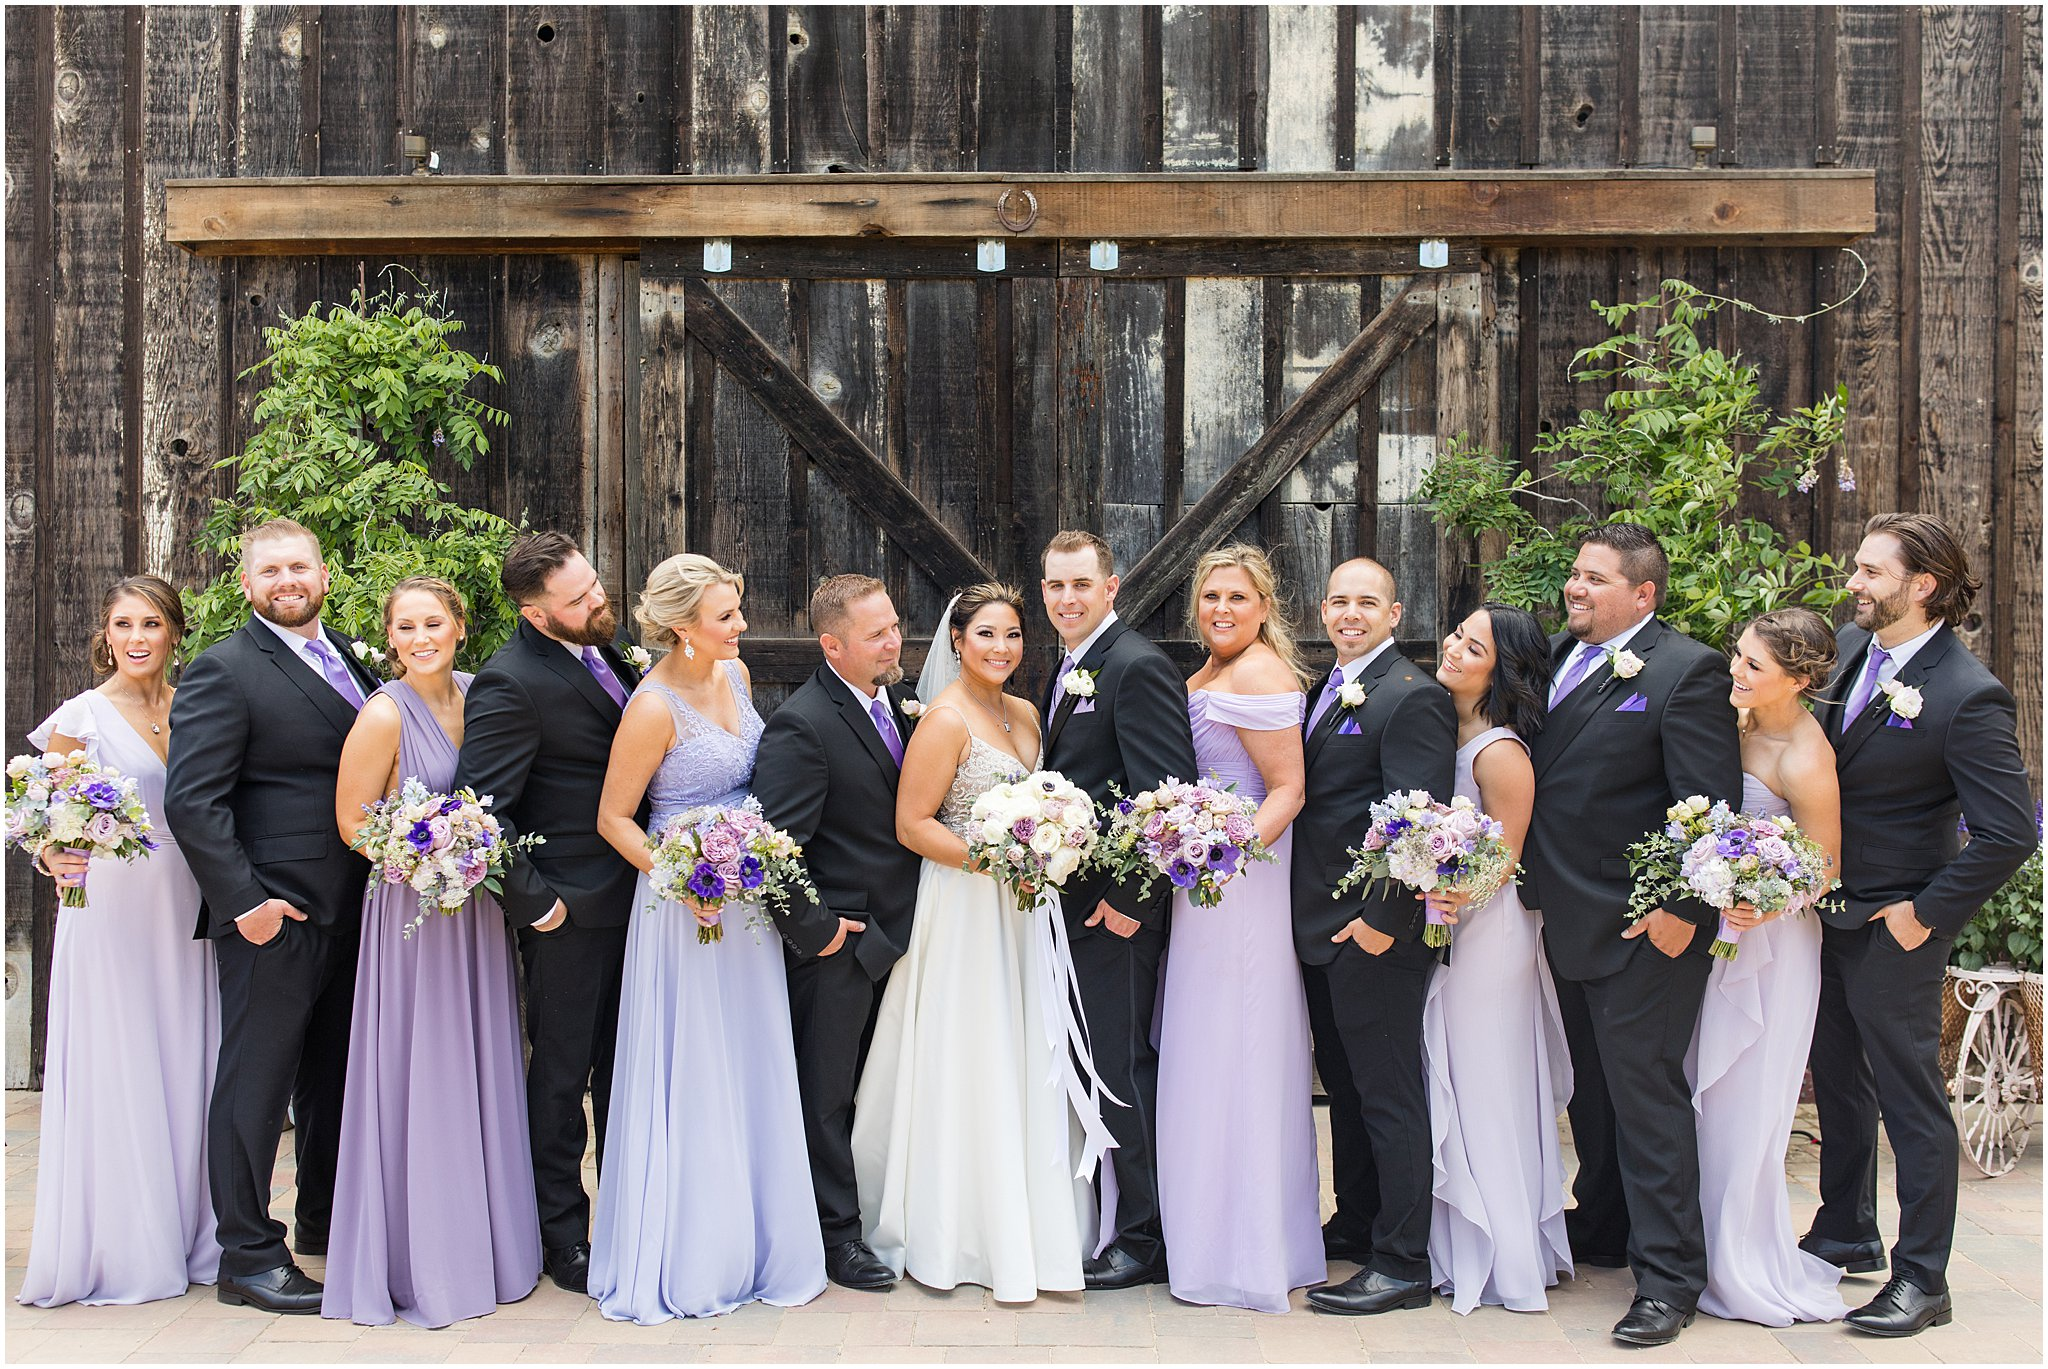 2019 wedding san juan bautista hacienda de leal vineyards bay area wedding photographer_0037.jpg